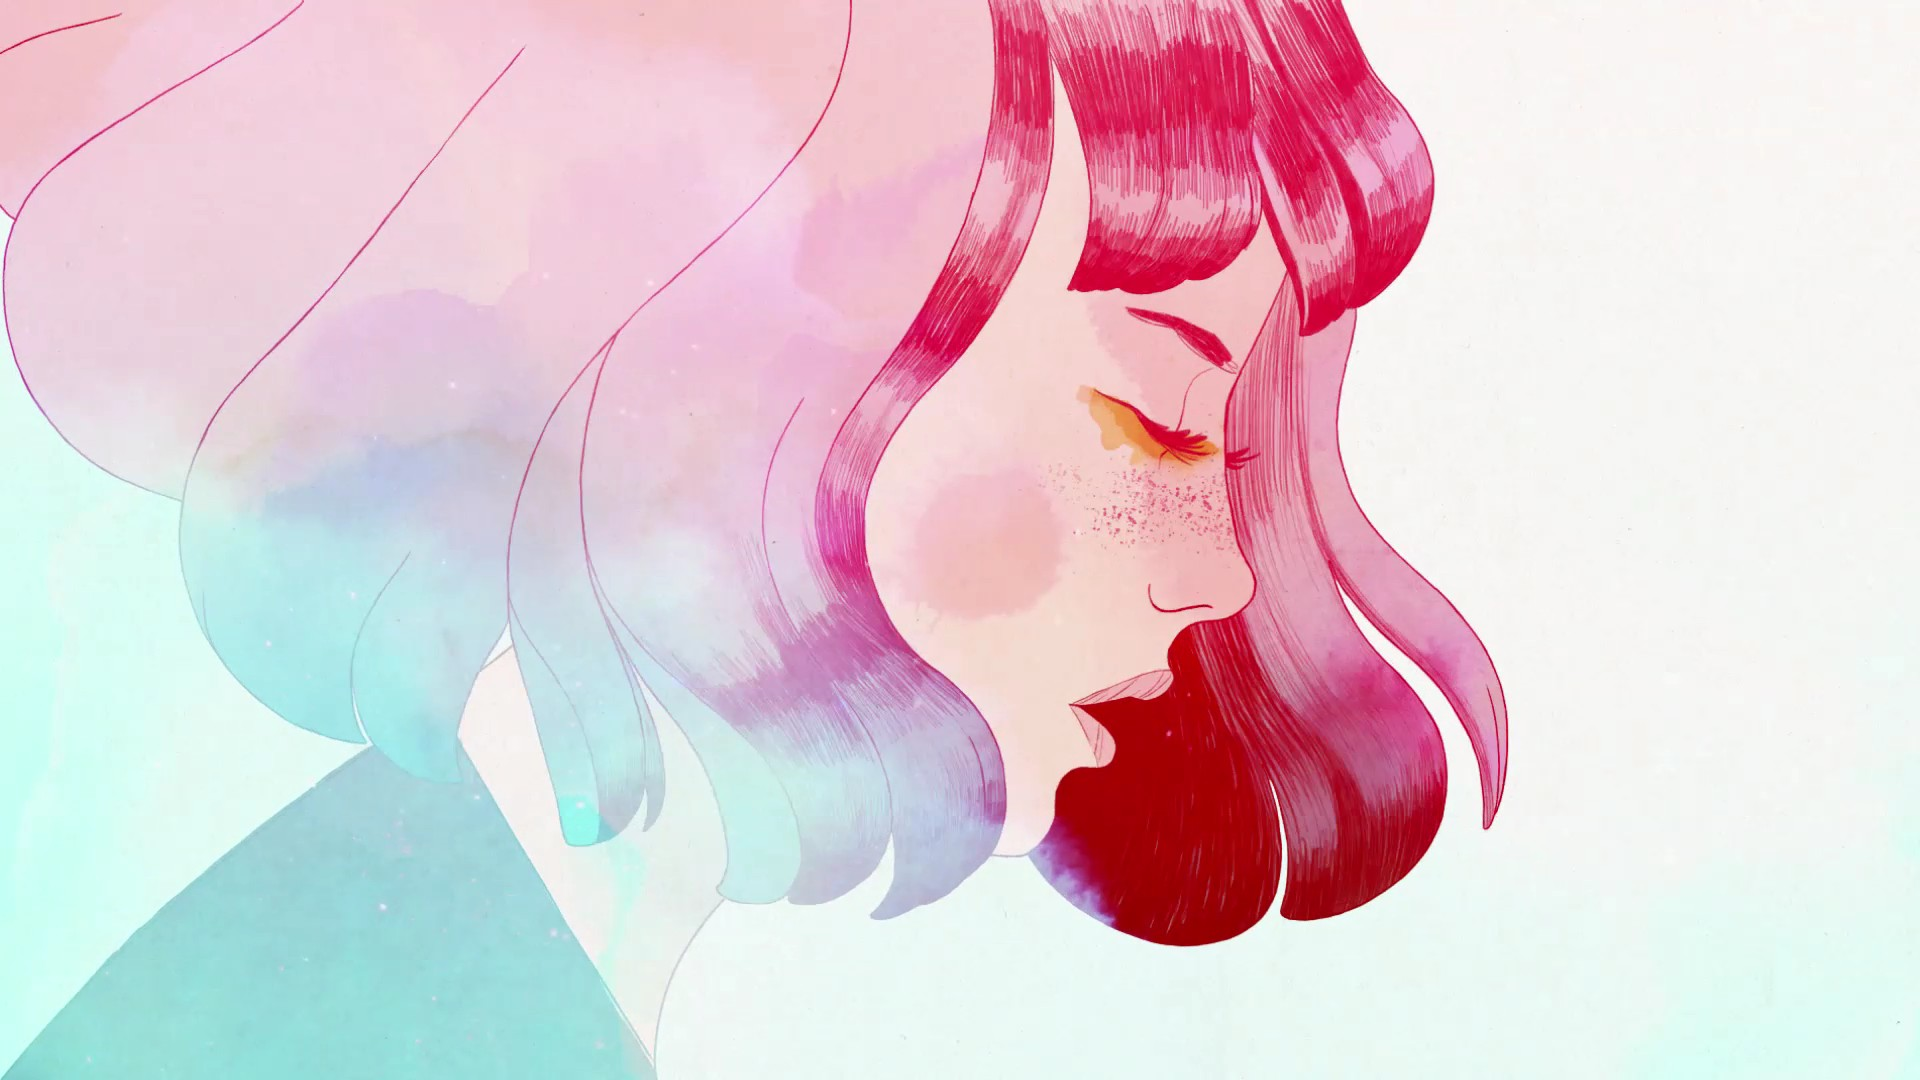 GRIS:You're my unique fav girl!... Xq